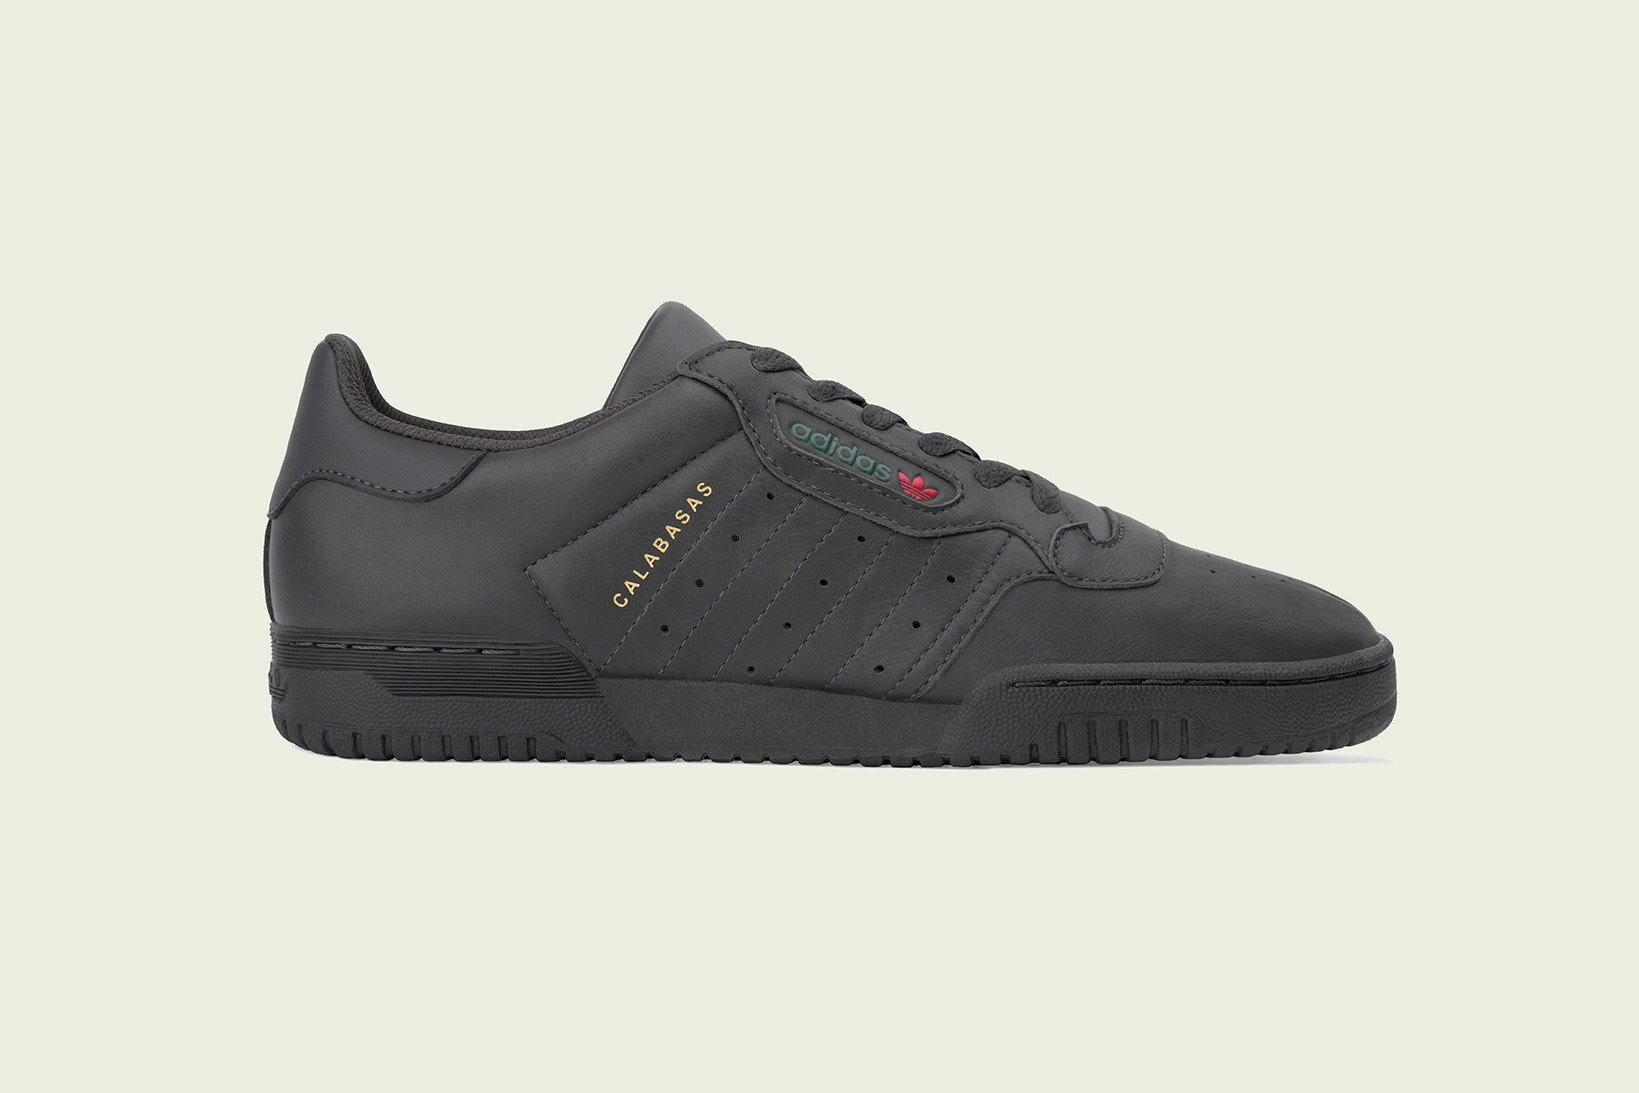 The adidas Yeezy PowerPhase Calabasas Releases On Sunday